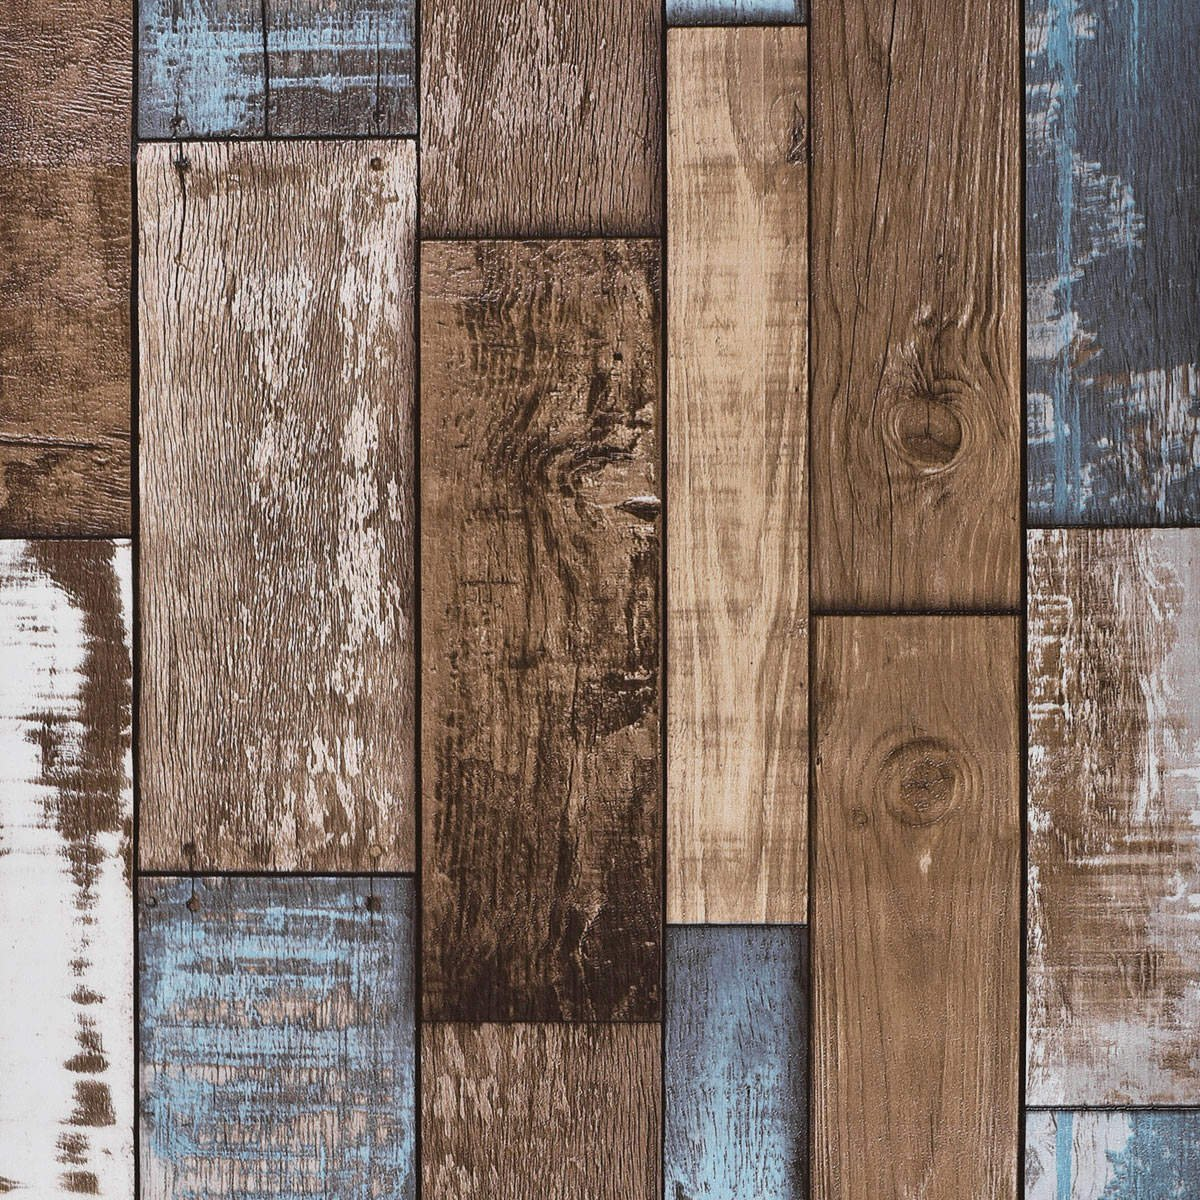 Akea Rustic Wood Wallpaper Roll, Vintage Wood Plank Look Wallpaper, for Home Decal, Restaurant, Cafe etc. Size 20.8inch x 32.8ft, 57 sq.feet